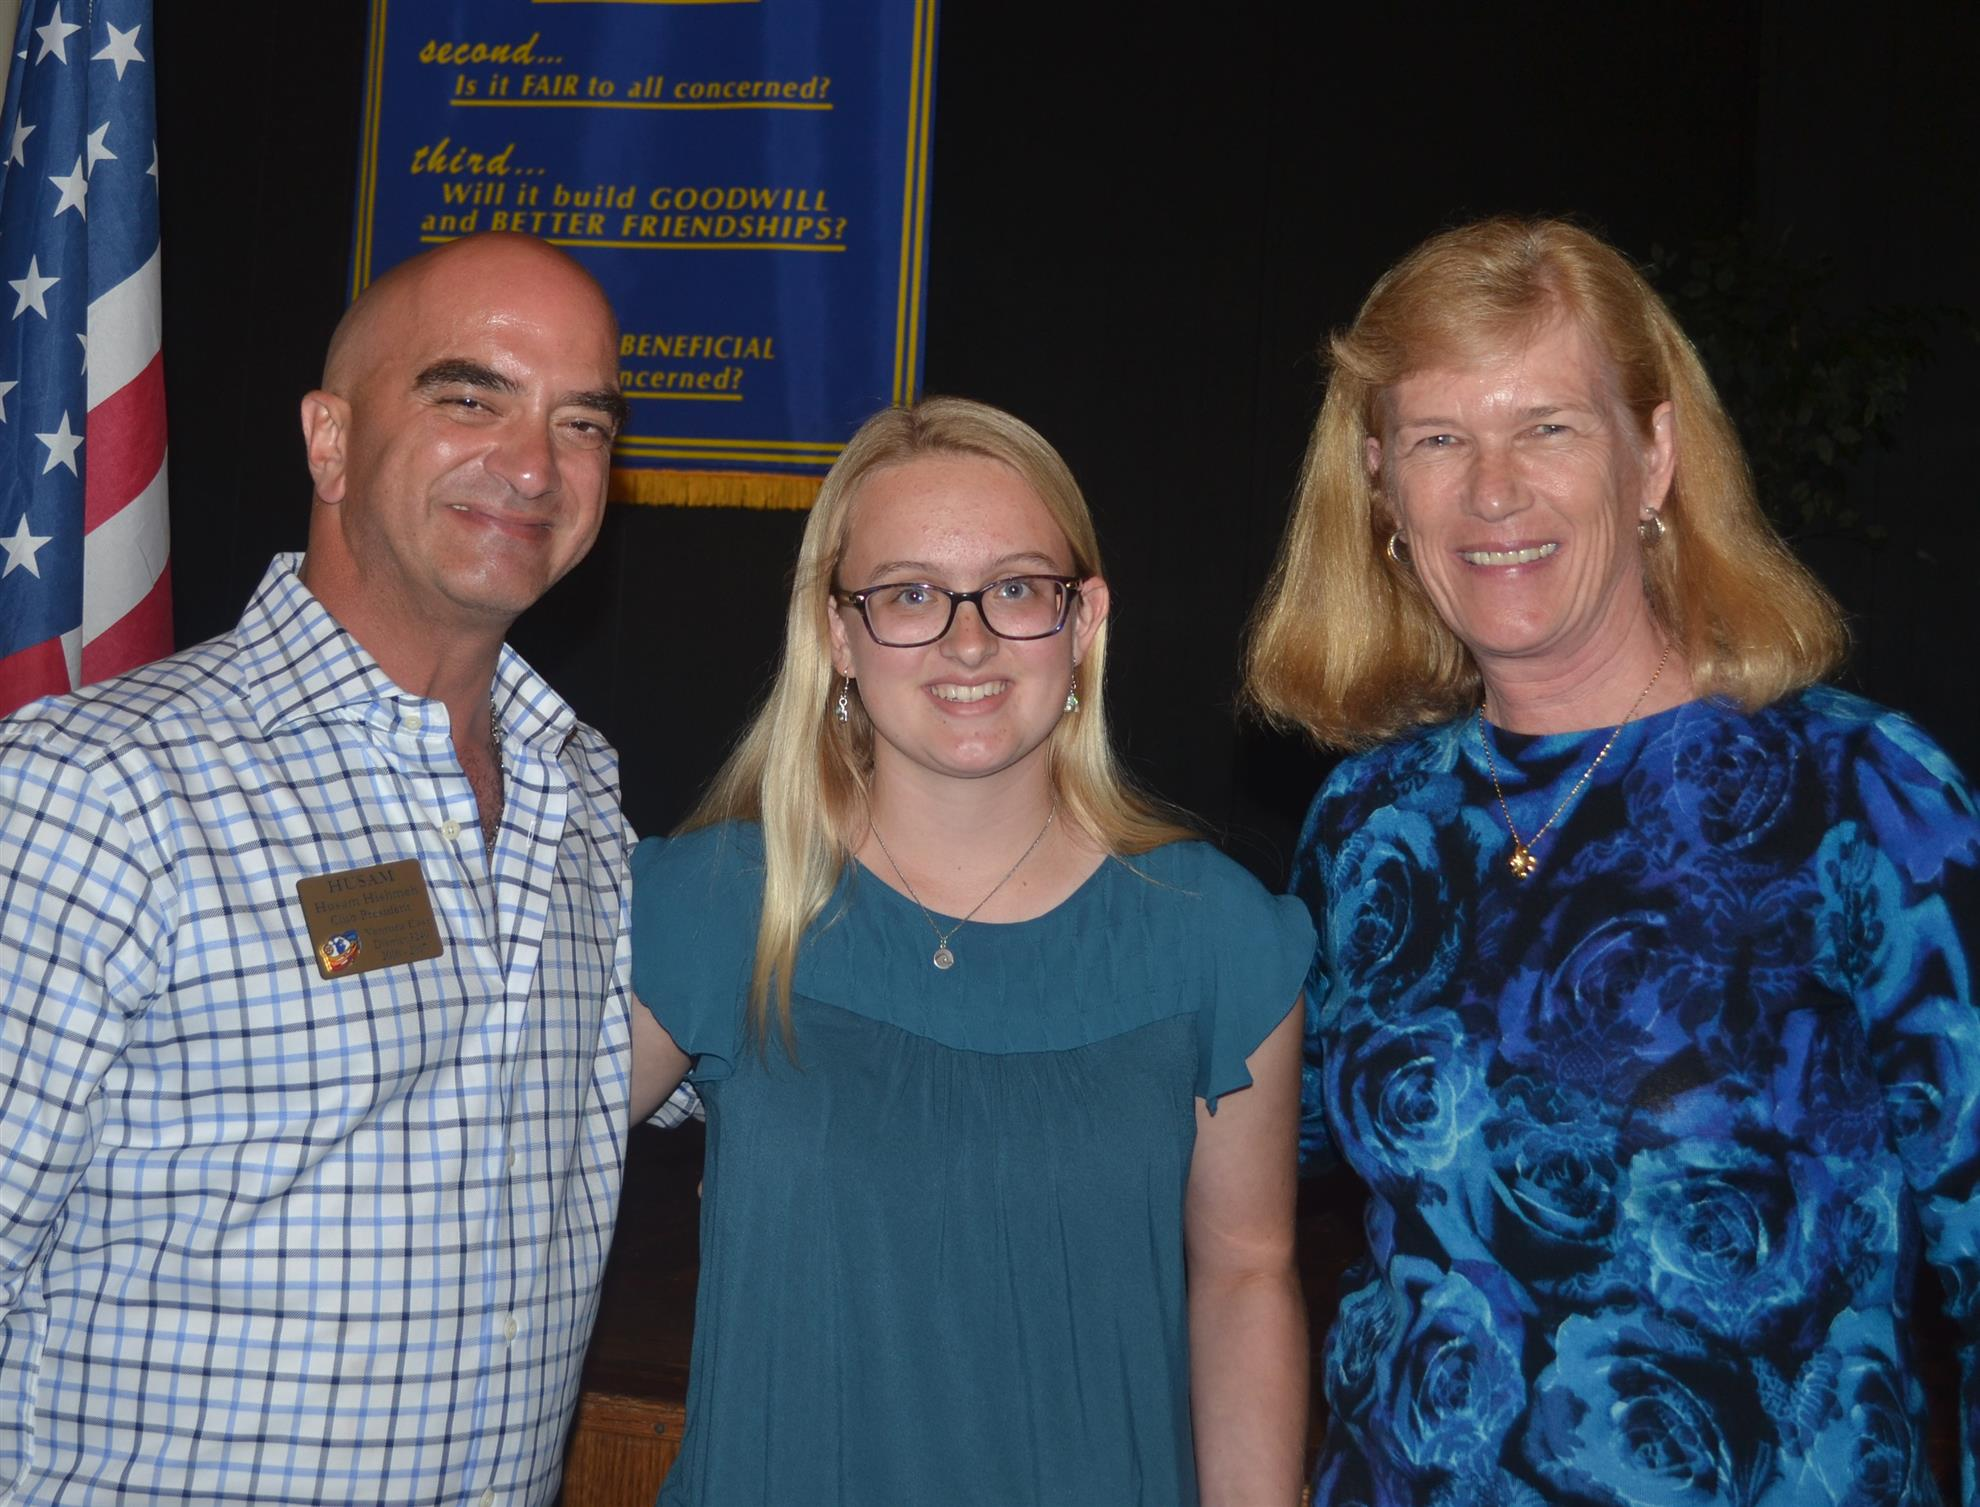 rotary club essay contest South hill rotary president's message public and to our rotary club 4-way test essay contest, for nominations for the rotary service above self awards for an.